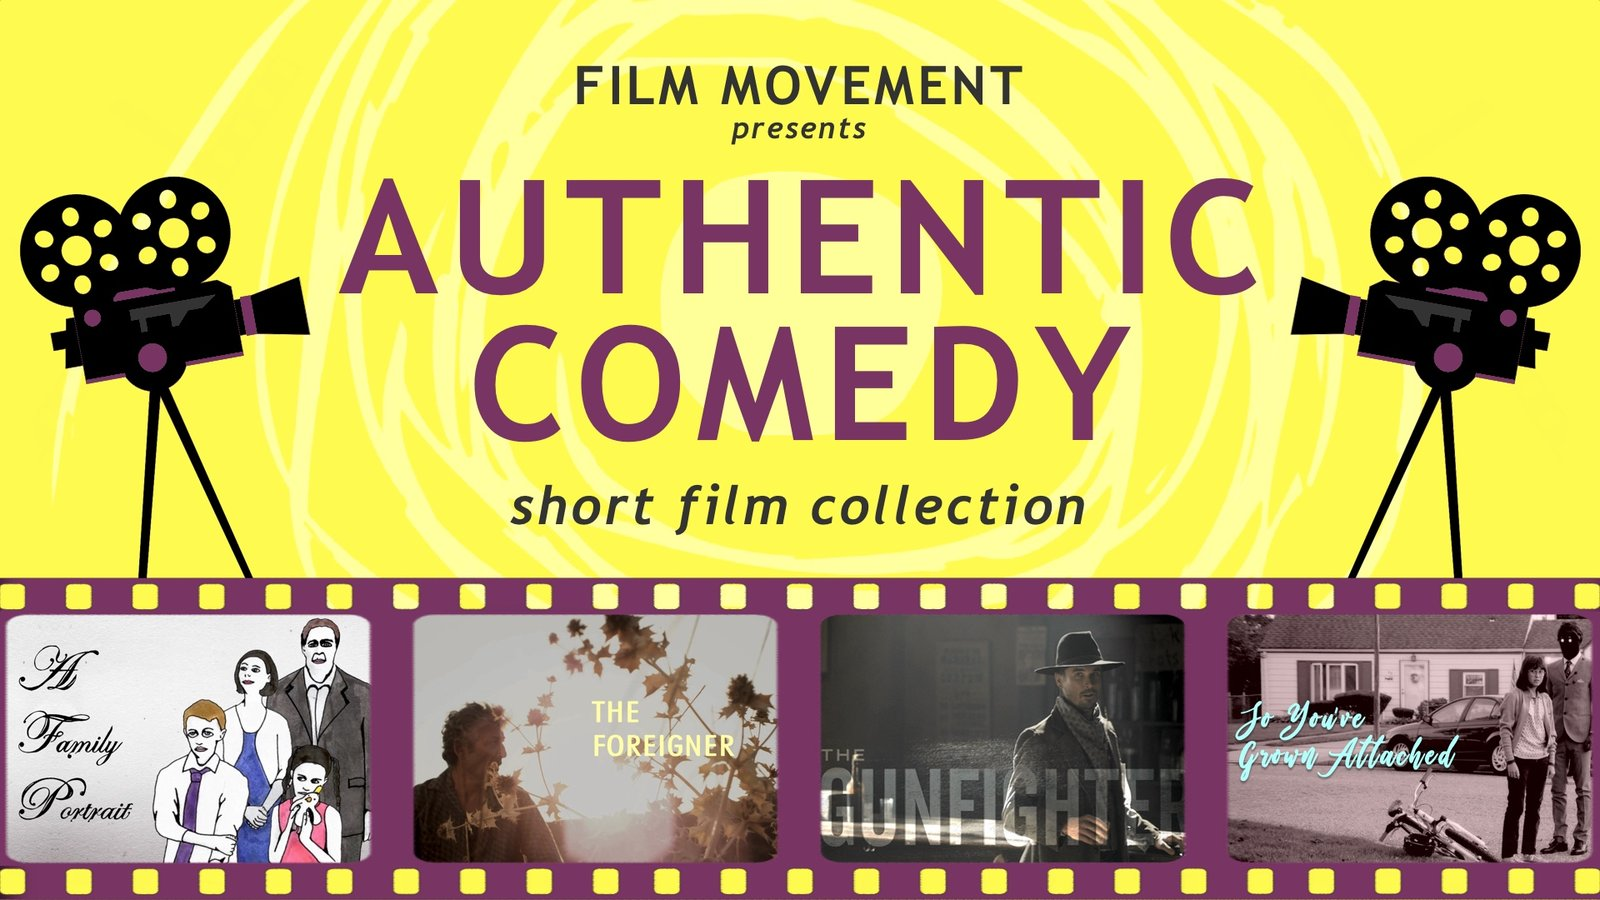 Authentic Comedy Short Film Collection